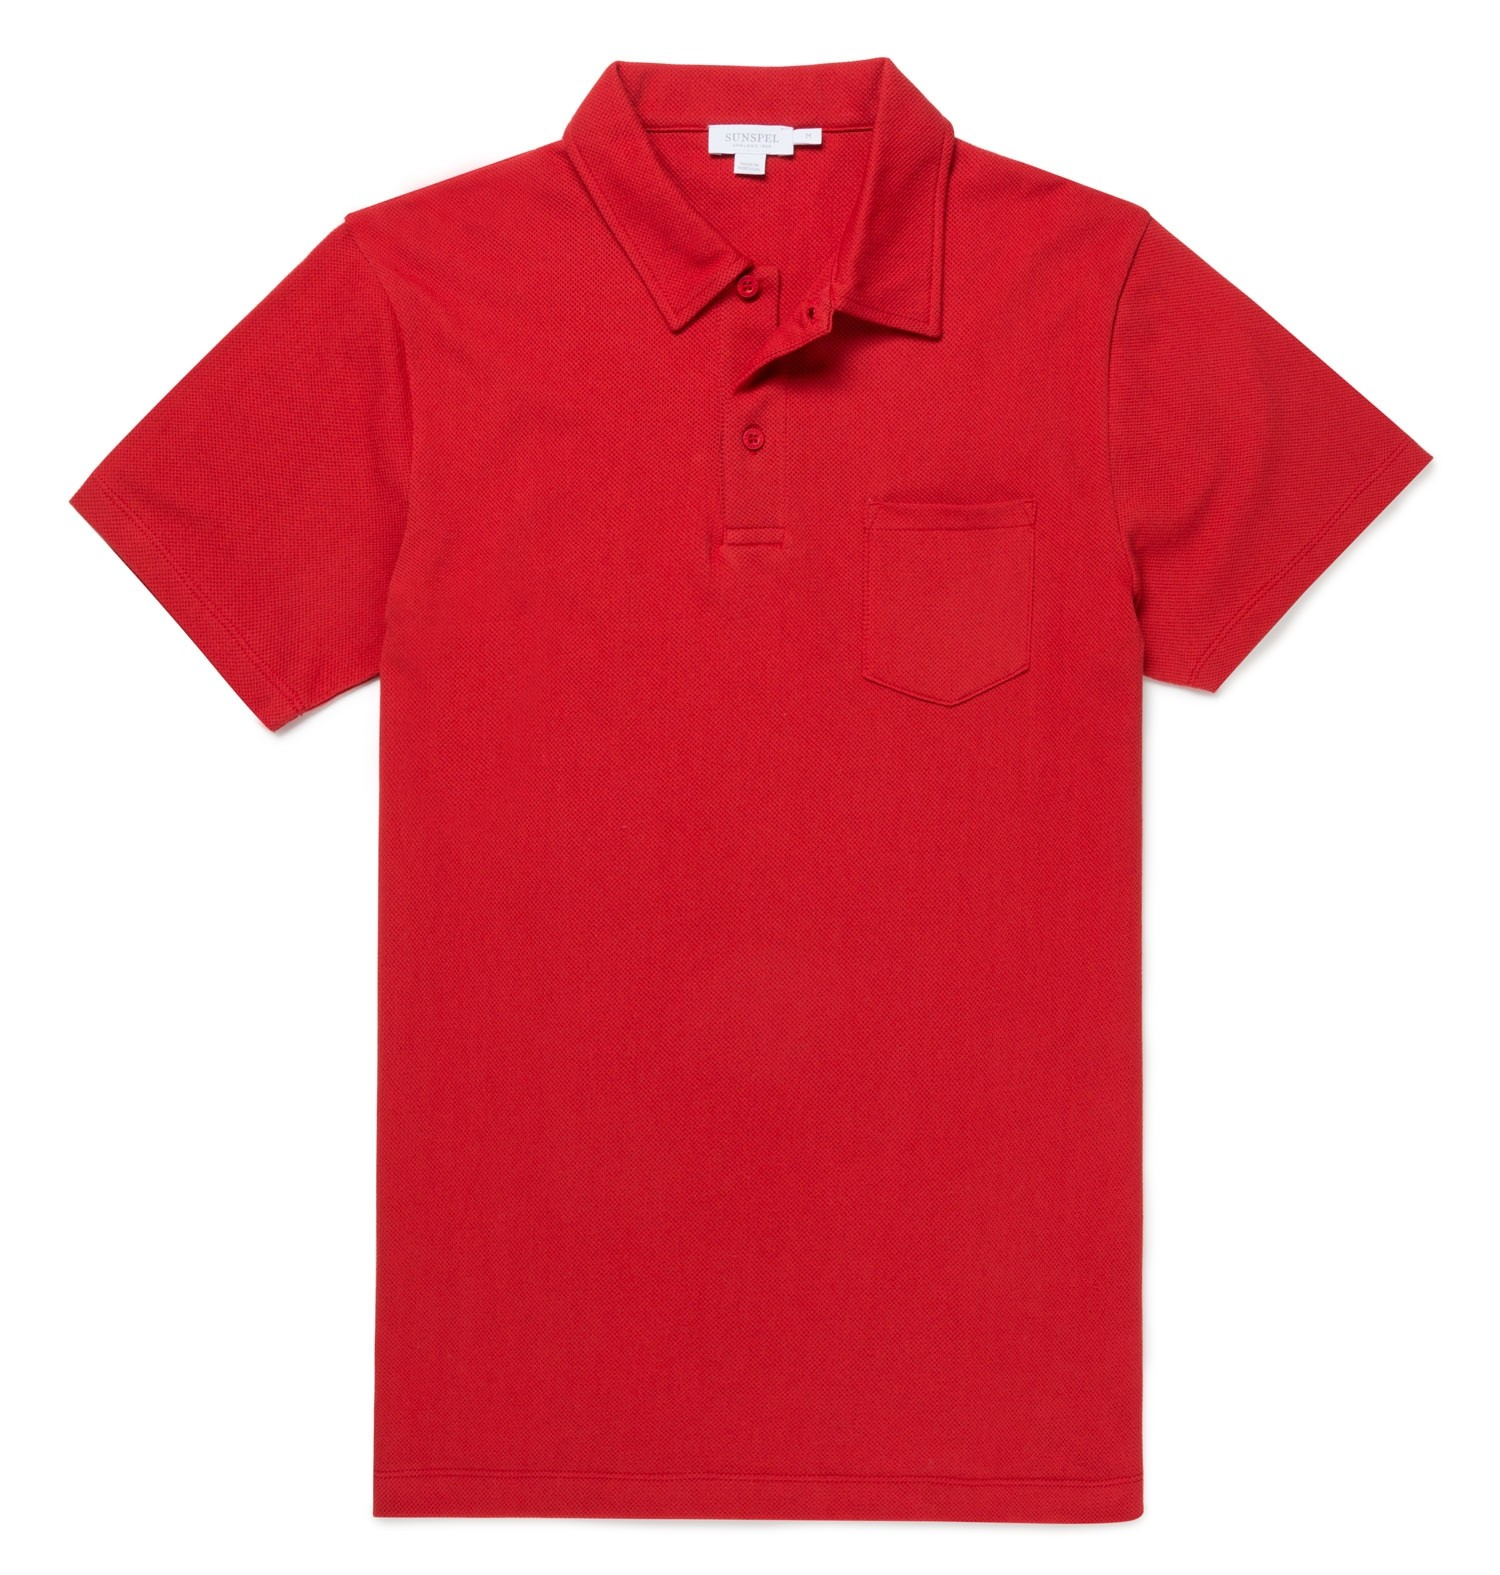 Sunspel Ruby Red Men's Cotton Riviera Polo Shirt